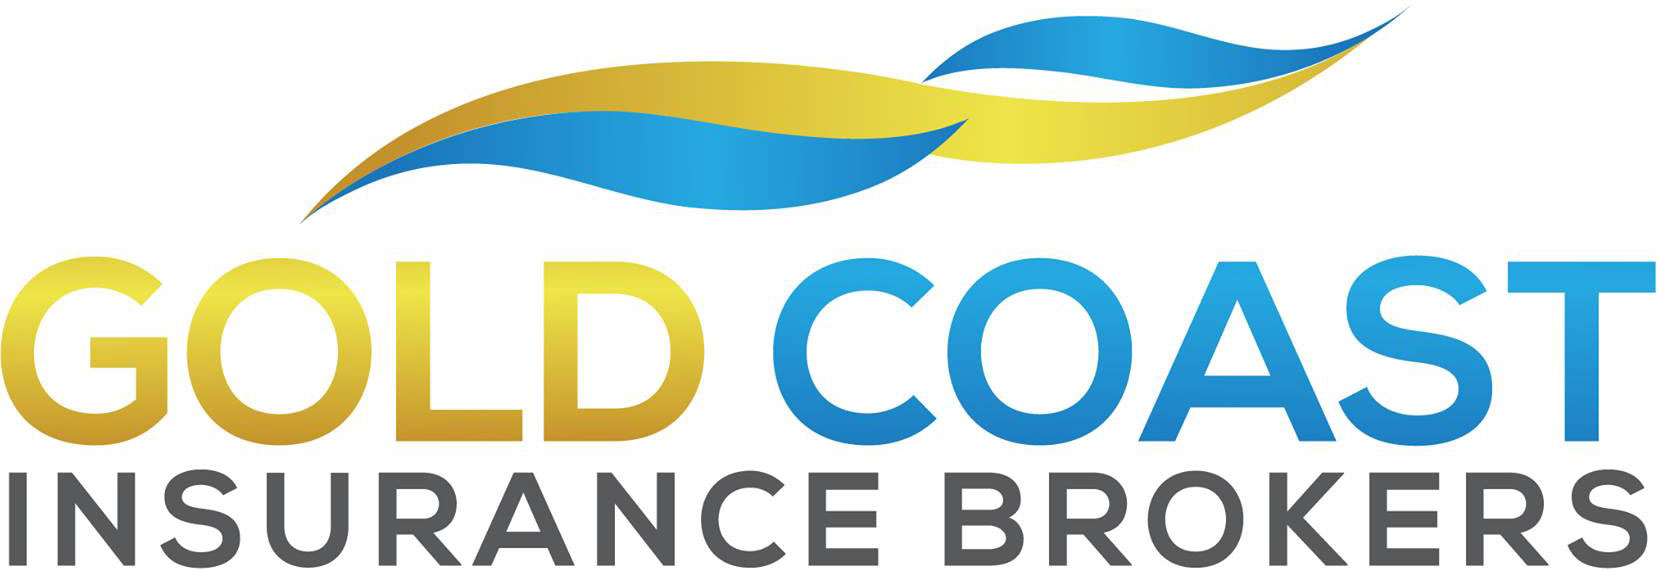 Gold Coast Insurance Brokers